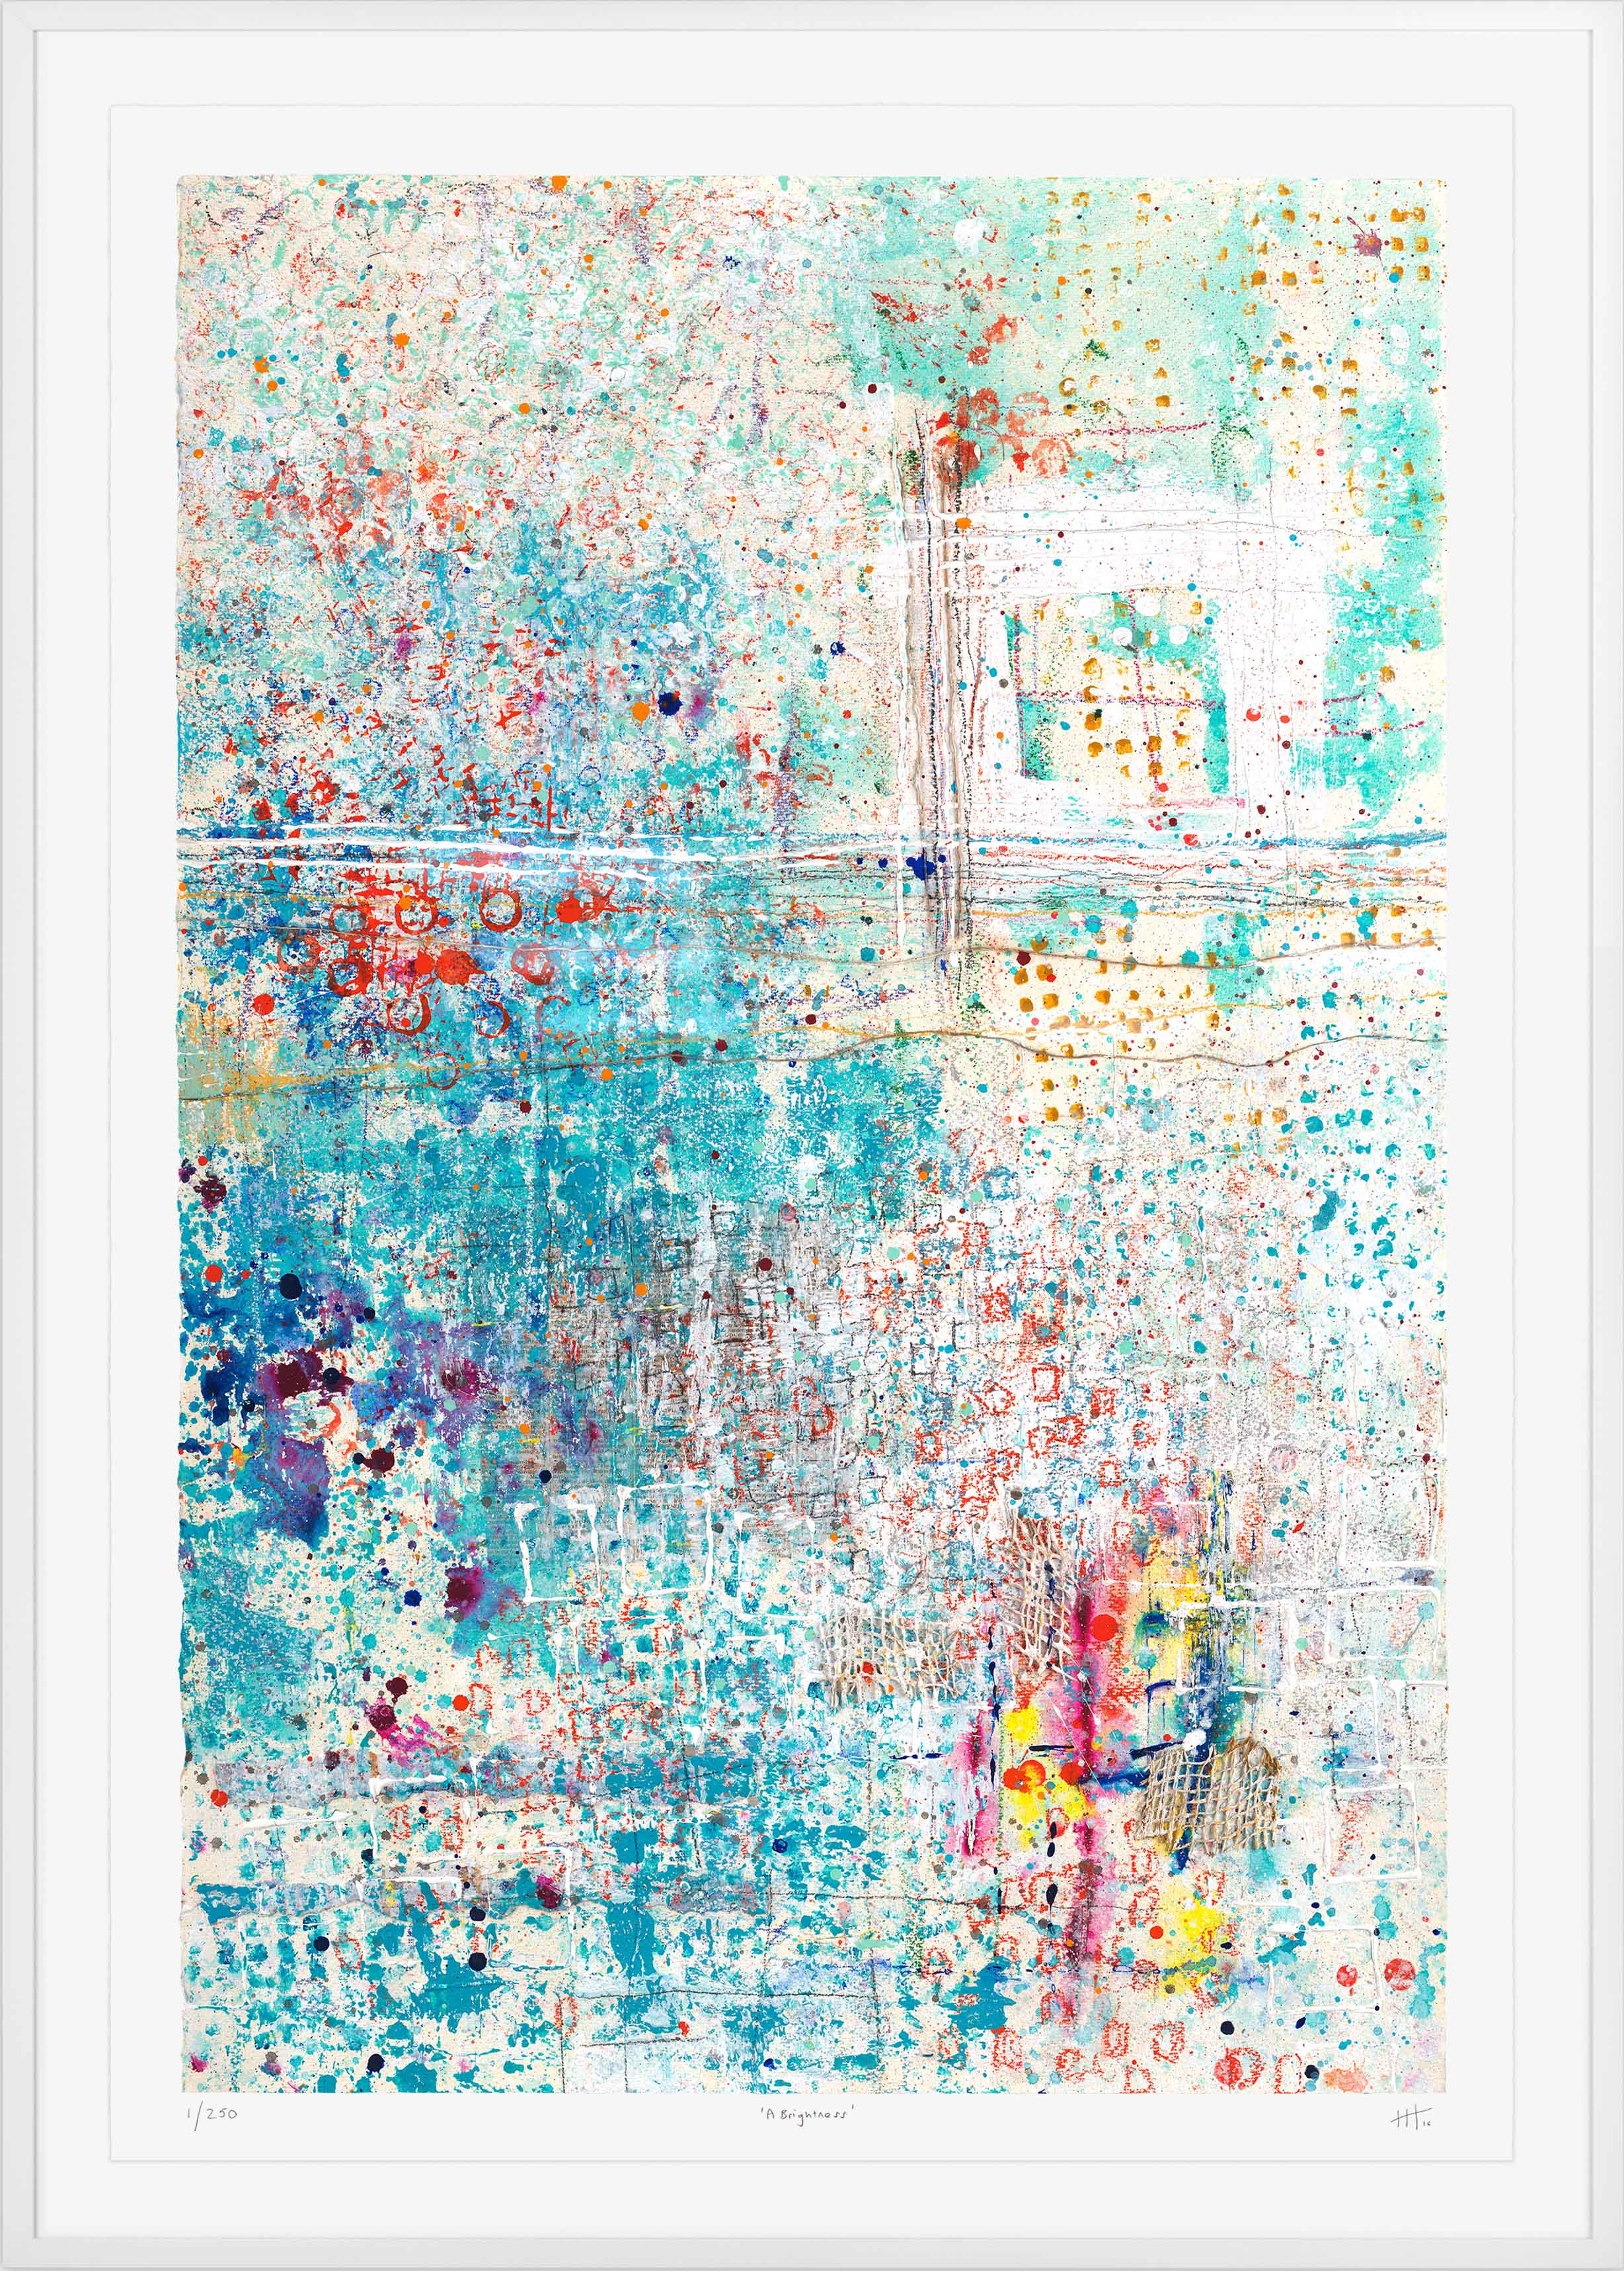 'A Brightness' LIMITED EDITION GICLEE PRINT /Edition of 250 Size: 105cm x 76cm (framed) £475 (includes frame) / £350 unframed  purchase via    contact form